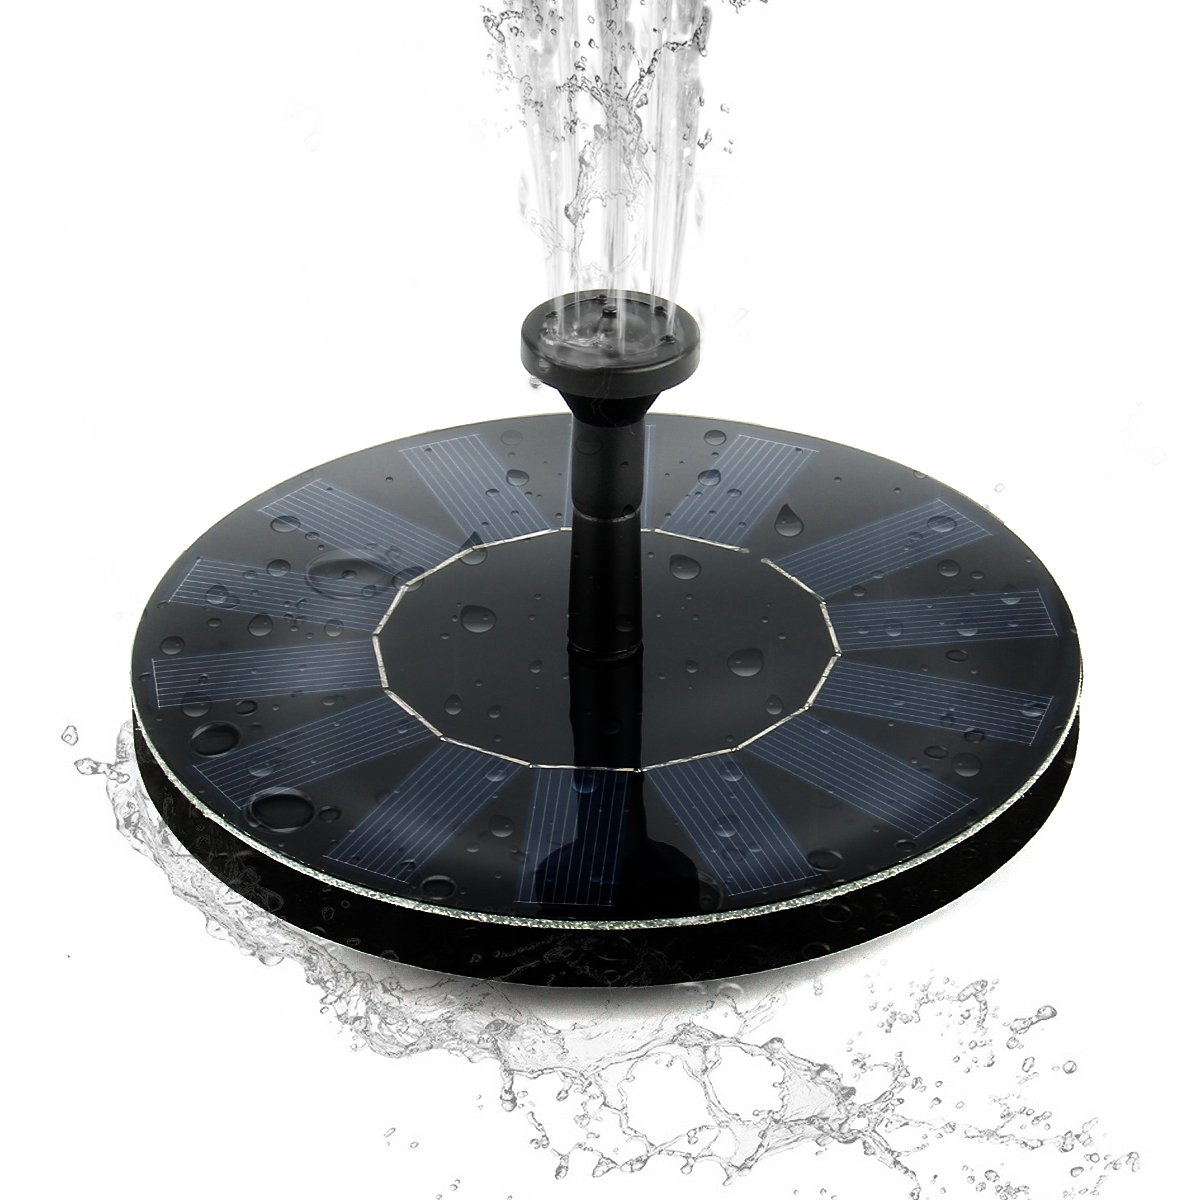 Solar Fountain Pump for Bird Bath,Small Water Fountain Pump, SOONHUA Floating Outdoor Solar Powered Panel Kit for Garden,Pool,Pond,Patio Decoration&Watering,Free Standing, 1.4W